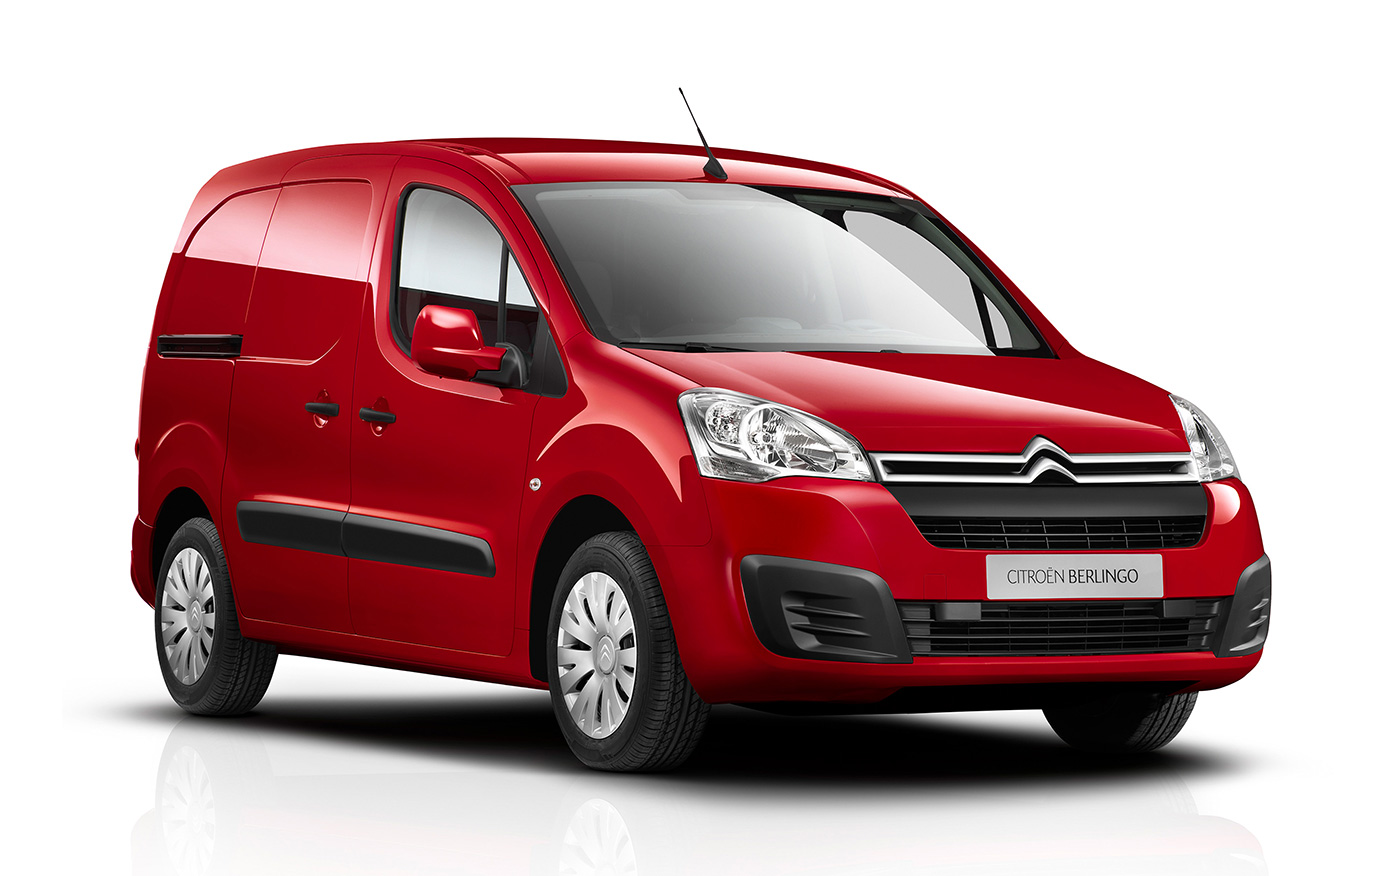 Citroen Berlingo 1.6 Bluehdi L1 625 LX 100hp S&s Etg6